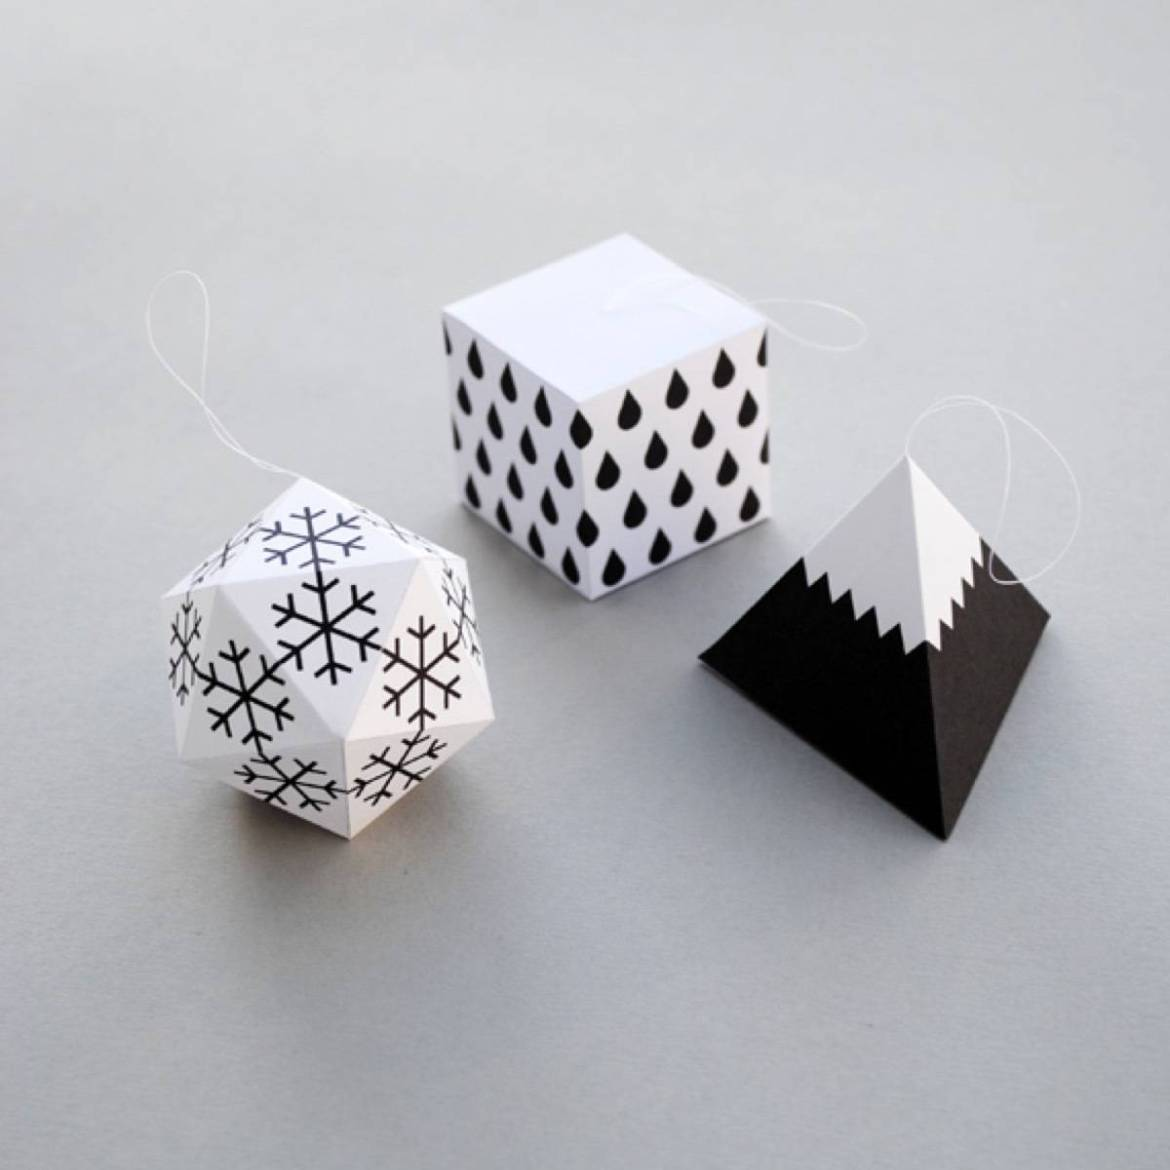 Printable black and white ornaments